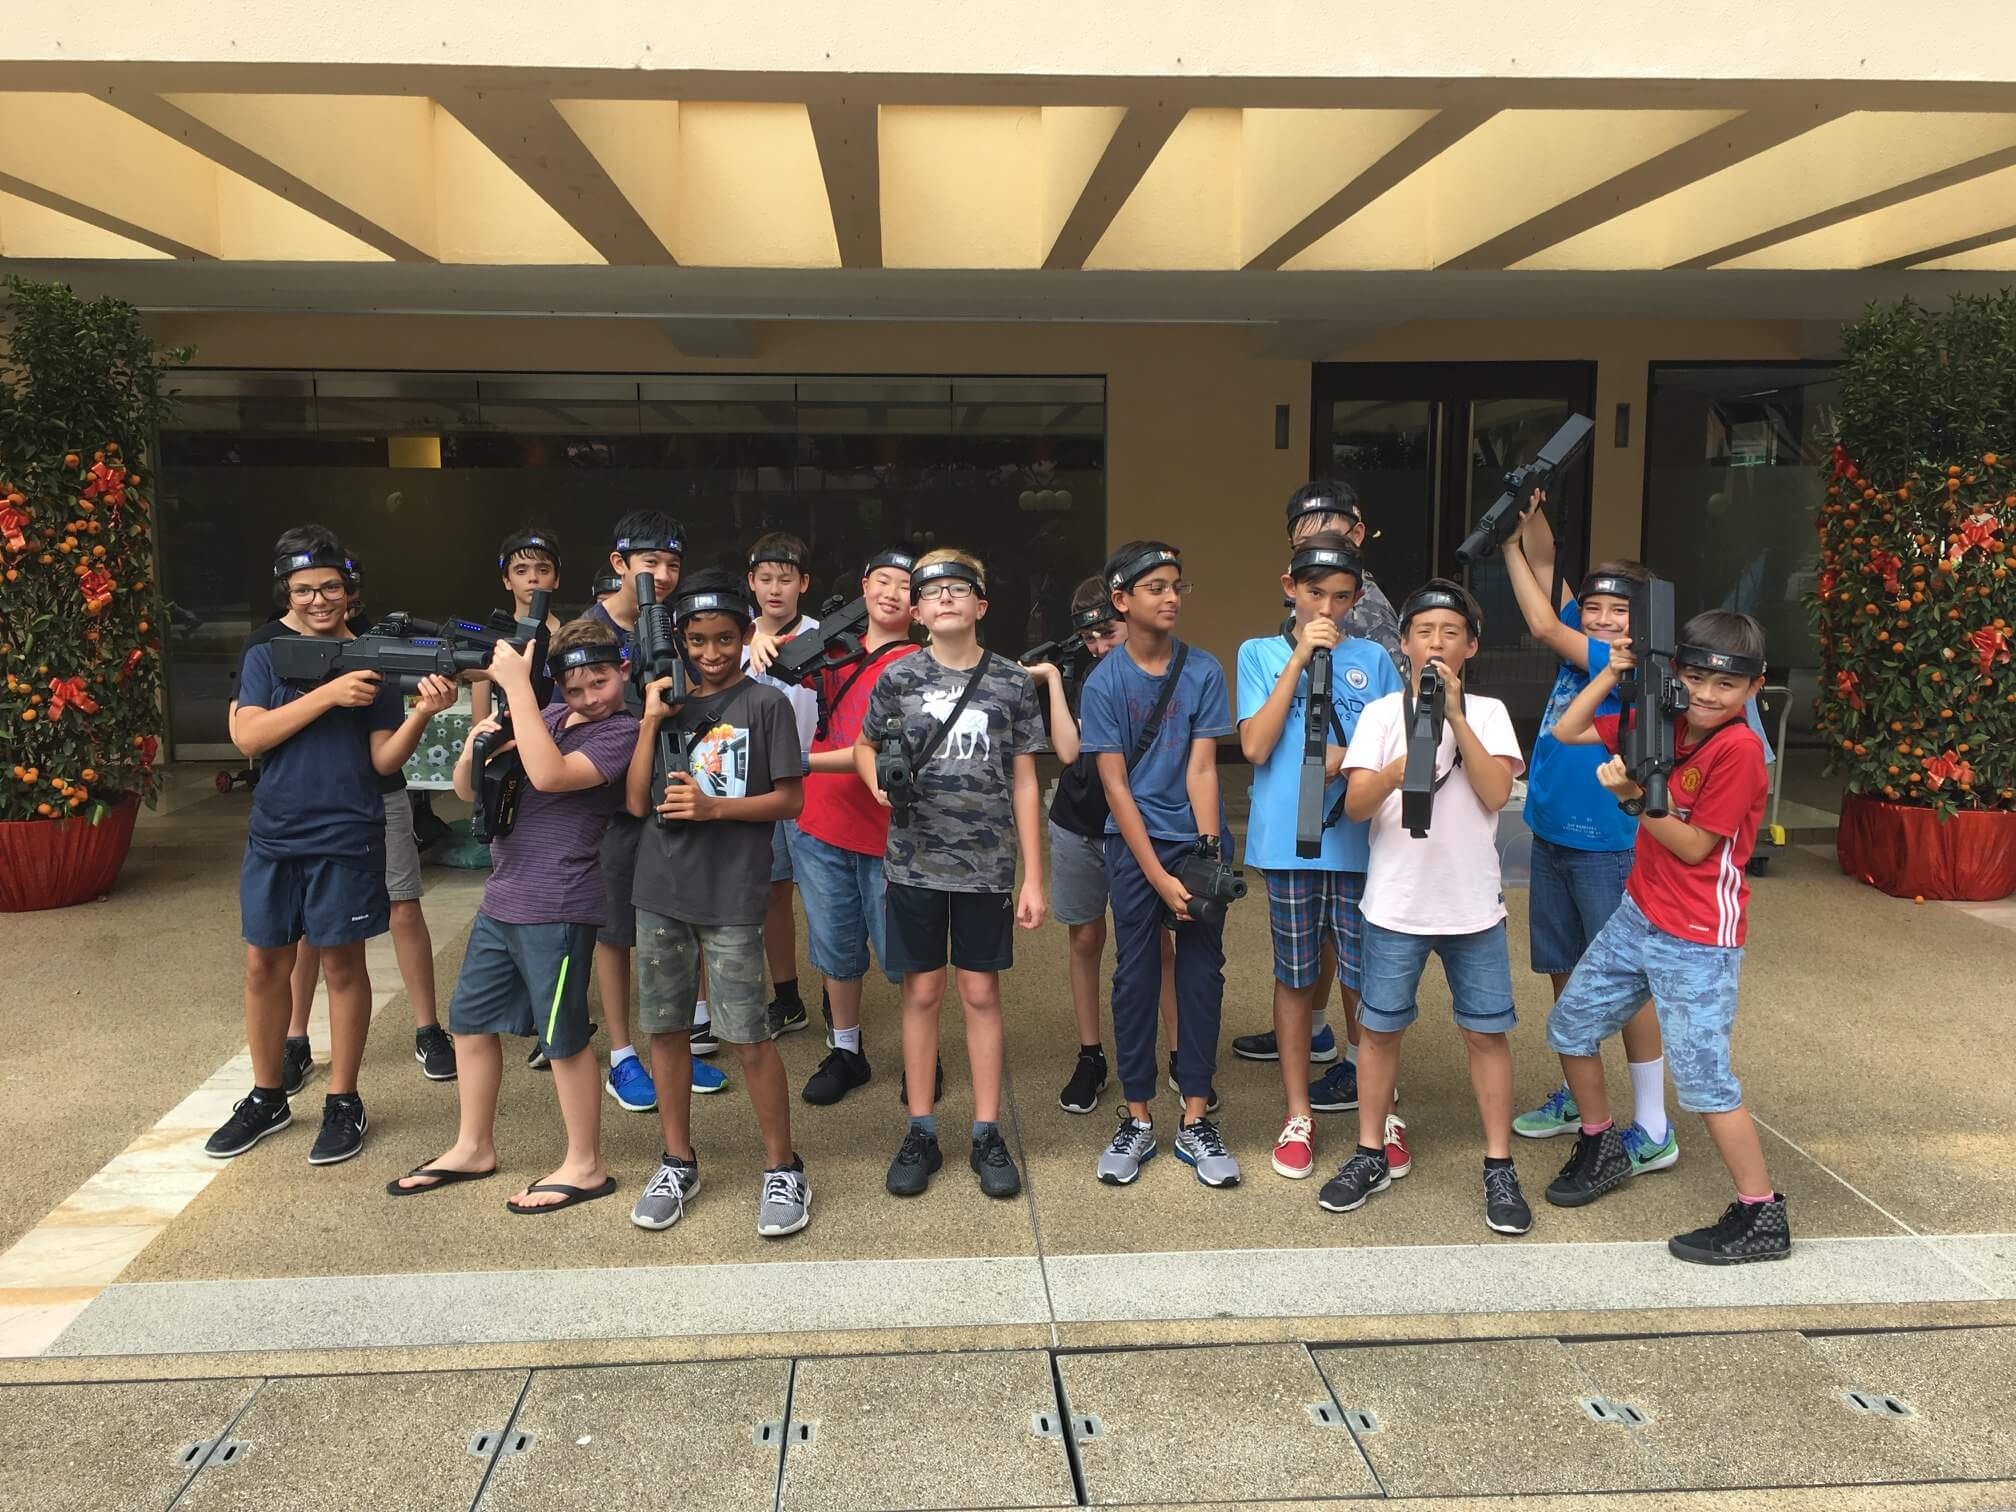 laser tag birthday party for shavak